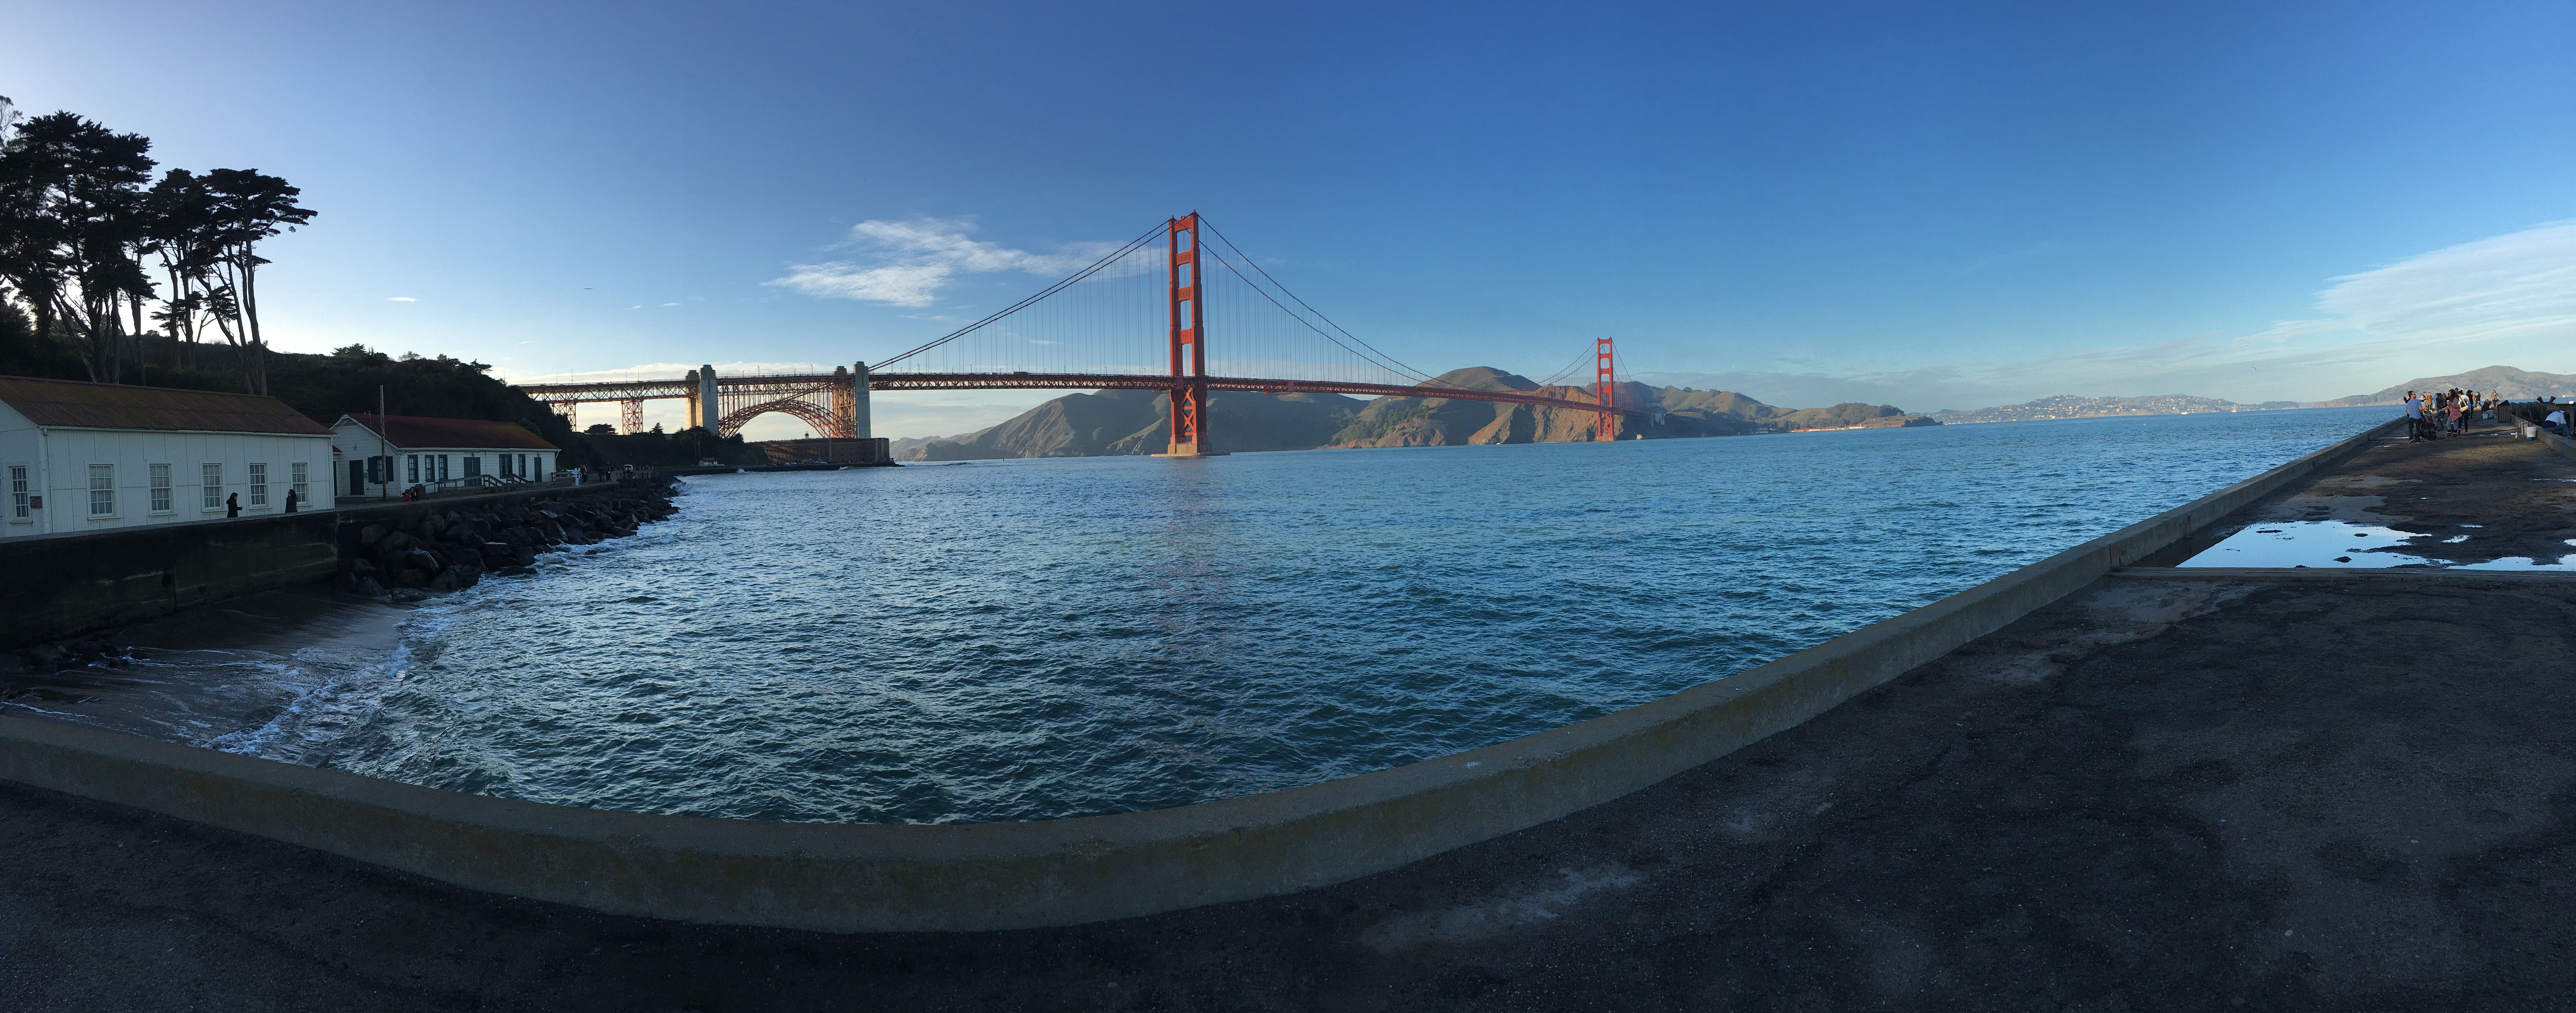 SF Bridge